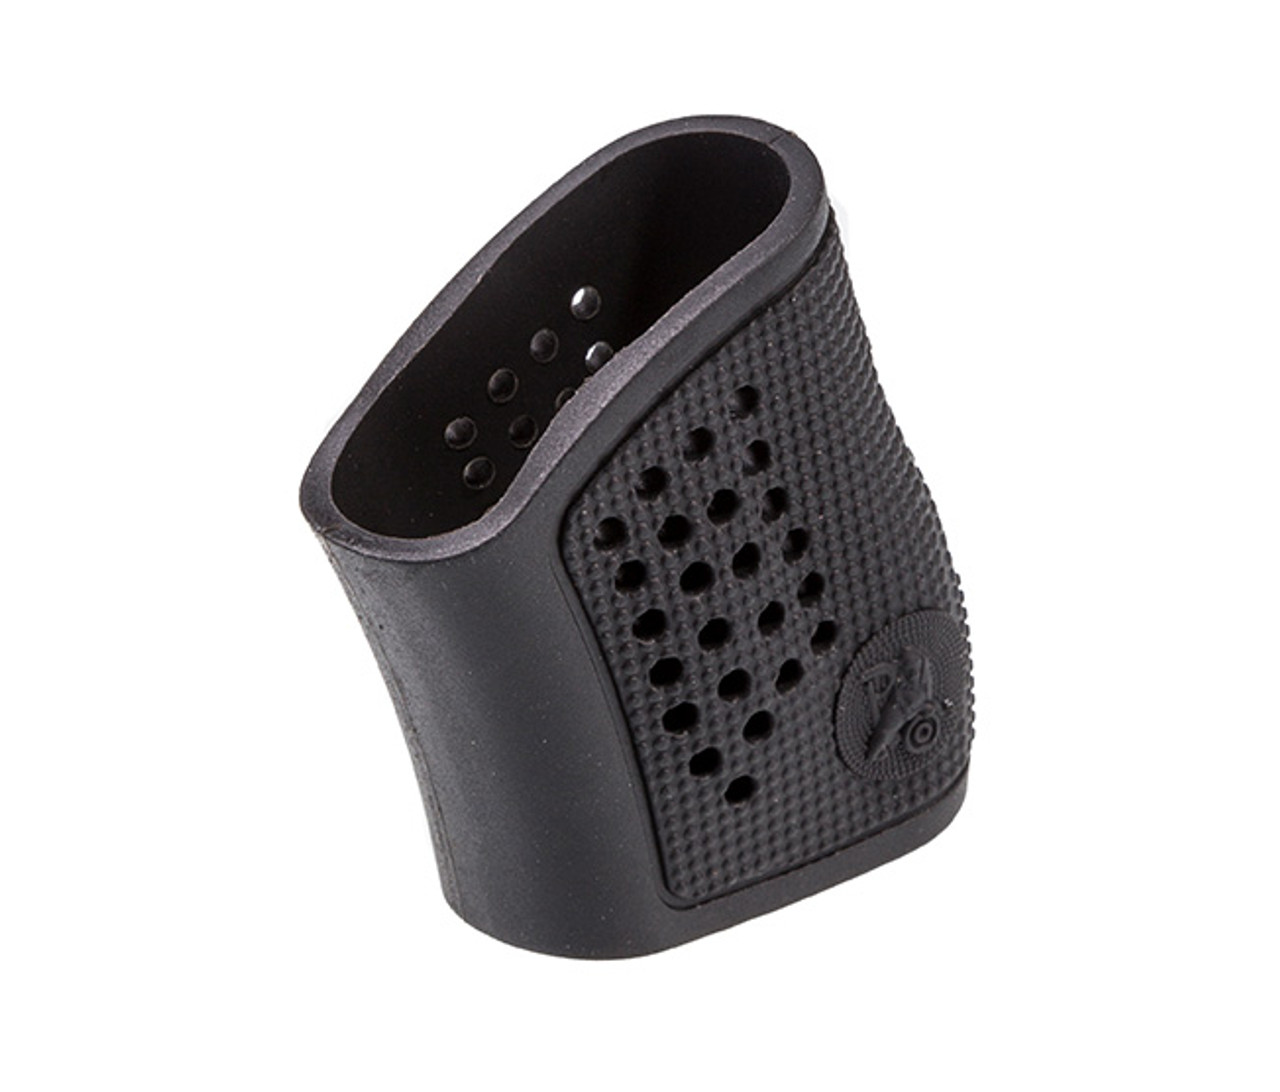 PACHMAYR TACTICAL GRIP,SMALL